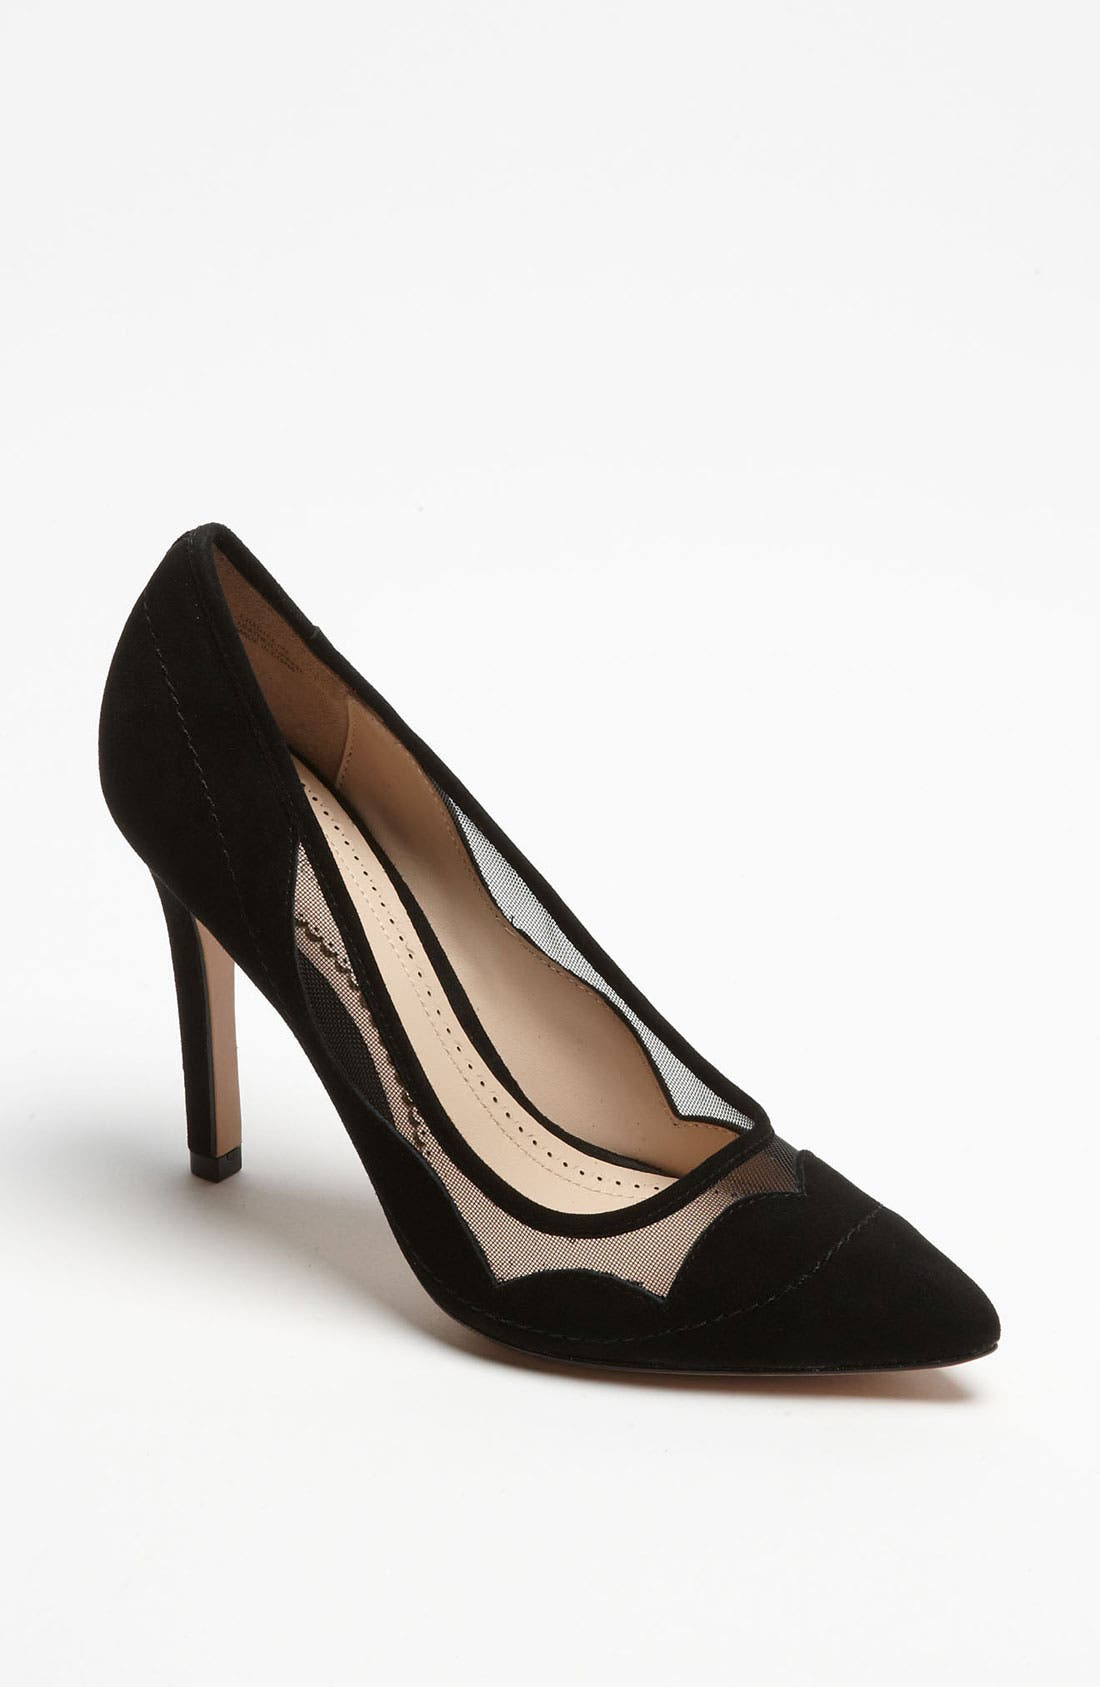 Alternate Image 1 Selected - Pour la Victoire 'Chantel' Pump